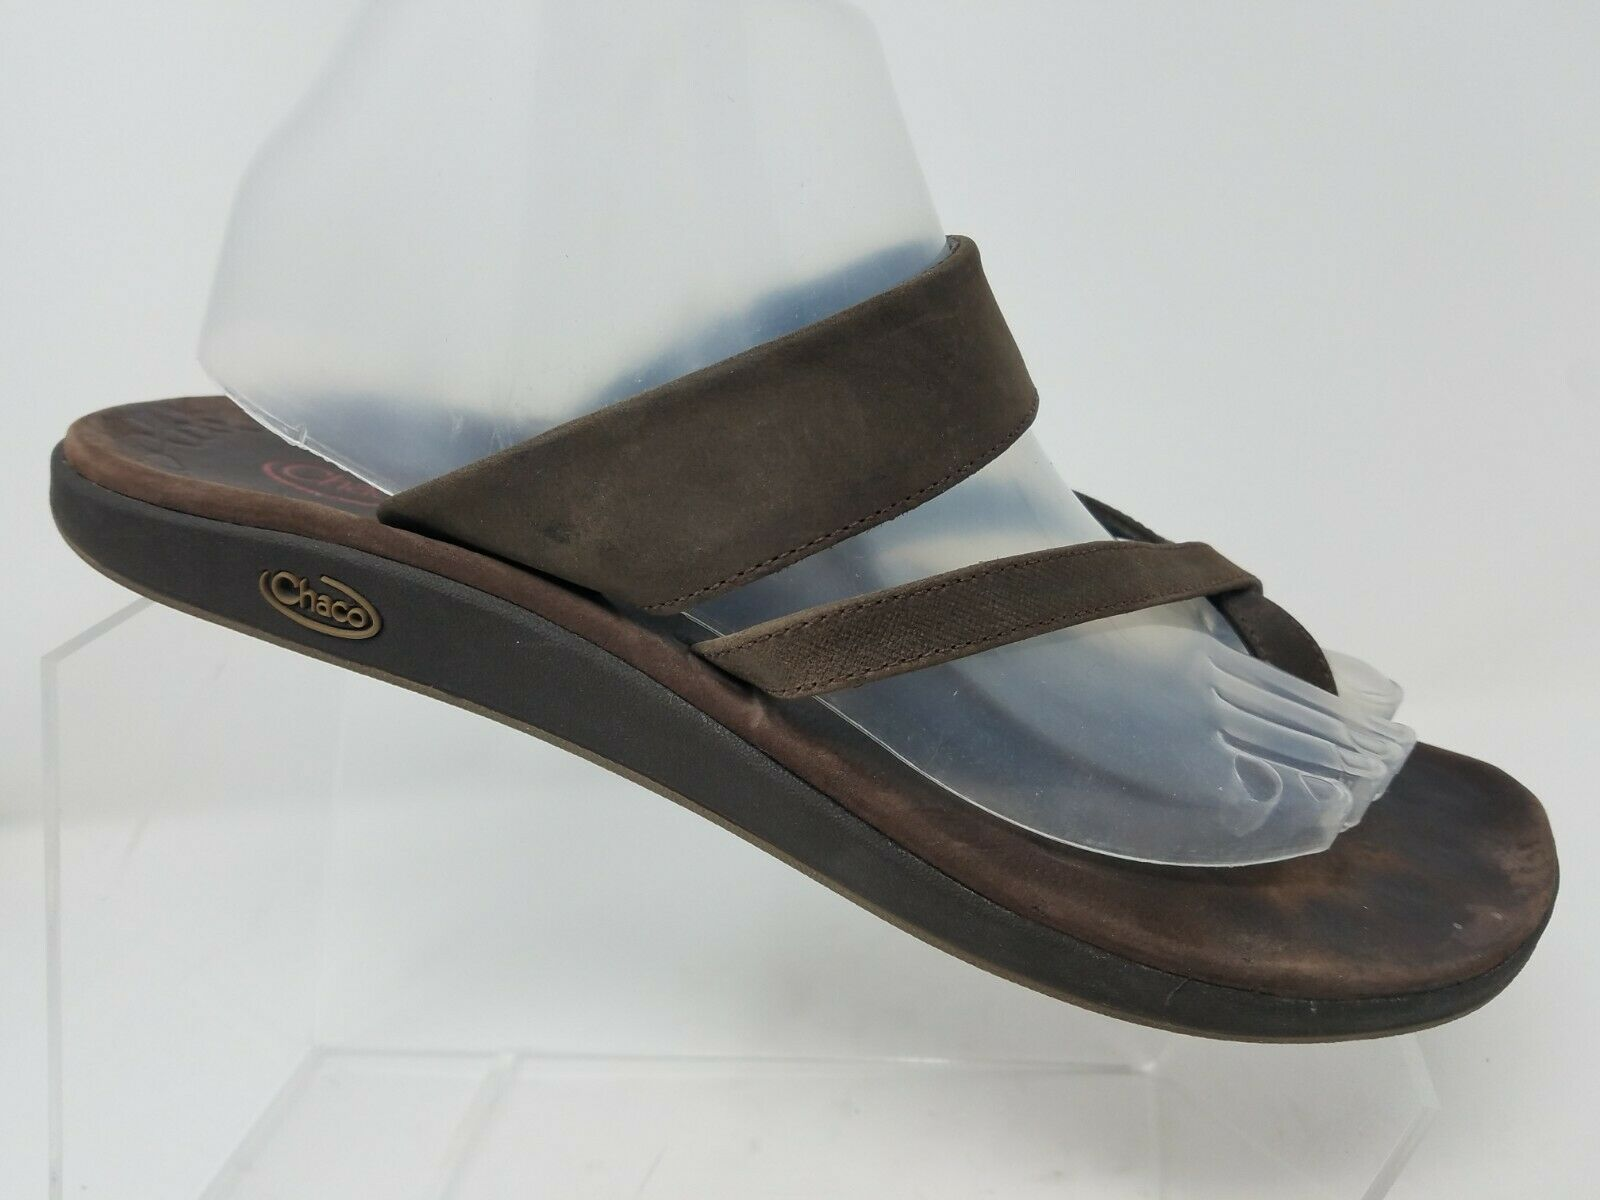 Chaco Womens Toe Ring Sandal Size 10 Brown Leather Comfort Thong Flip Flop